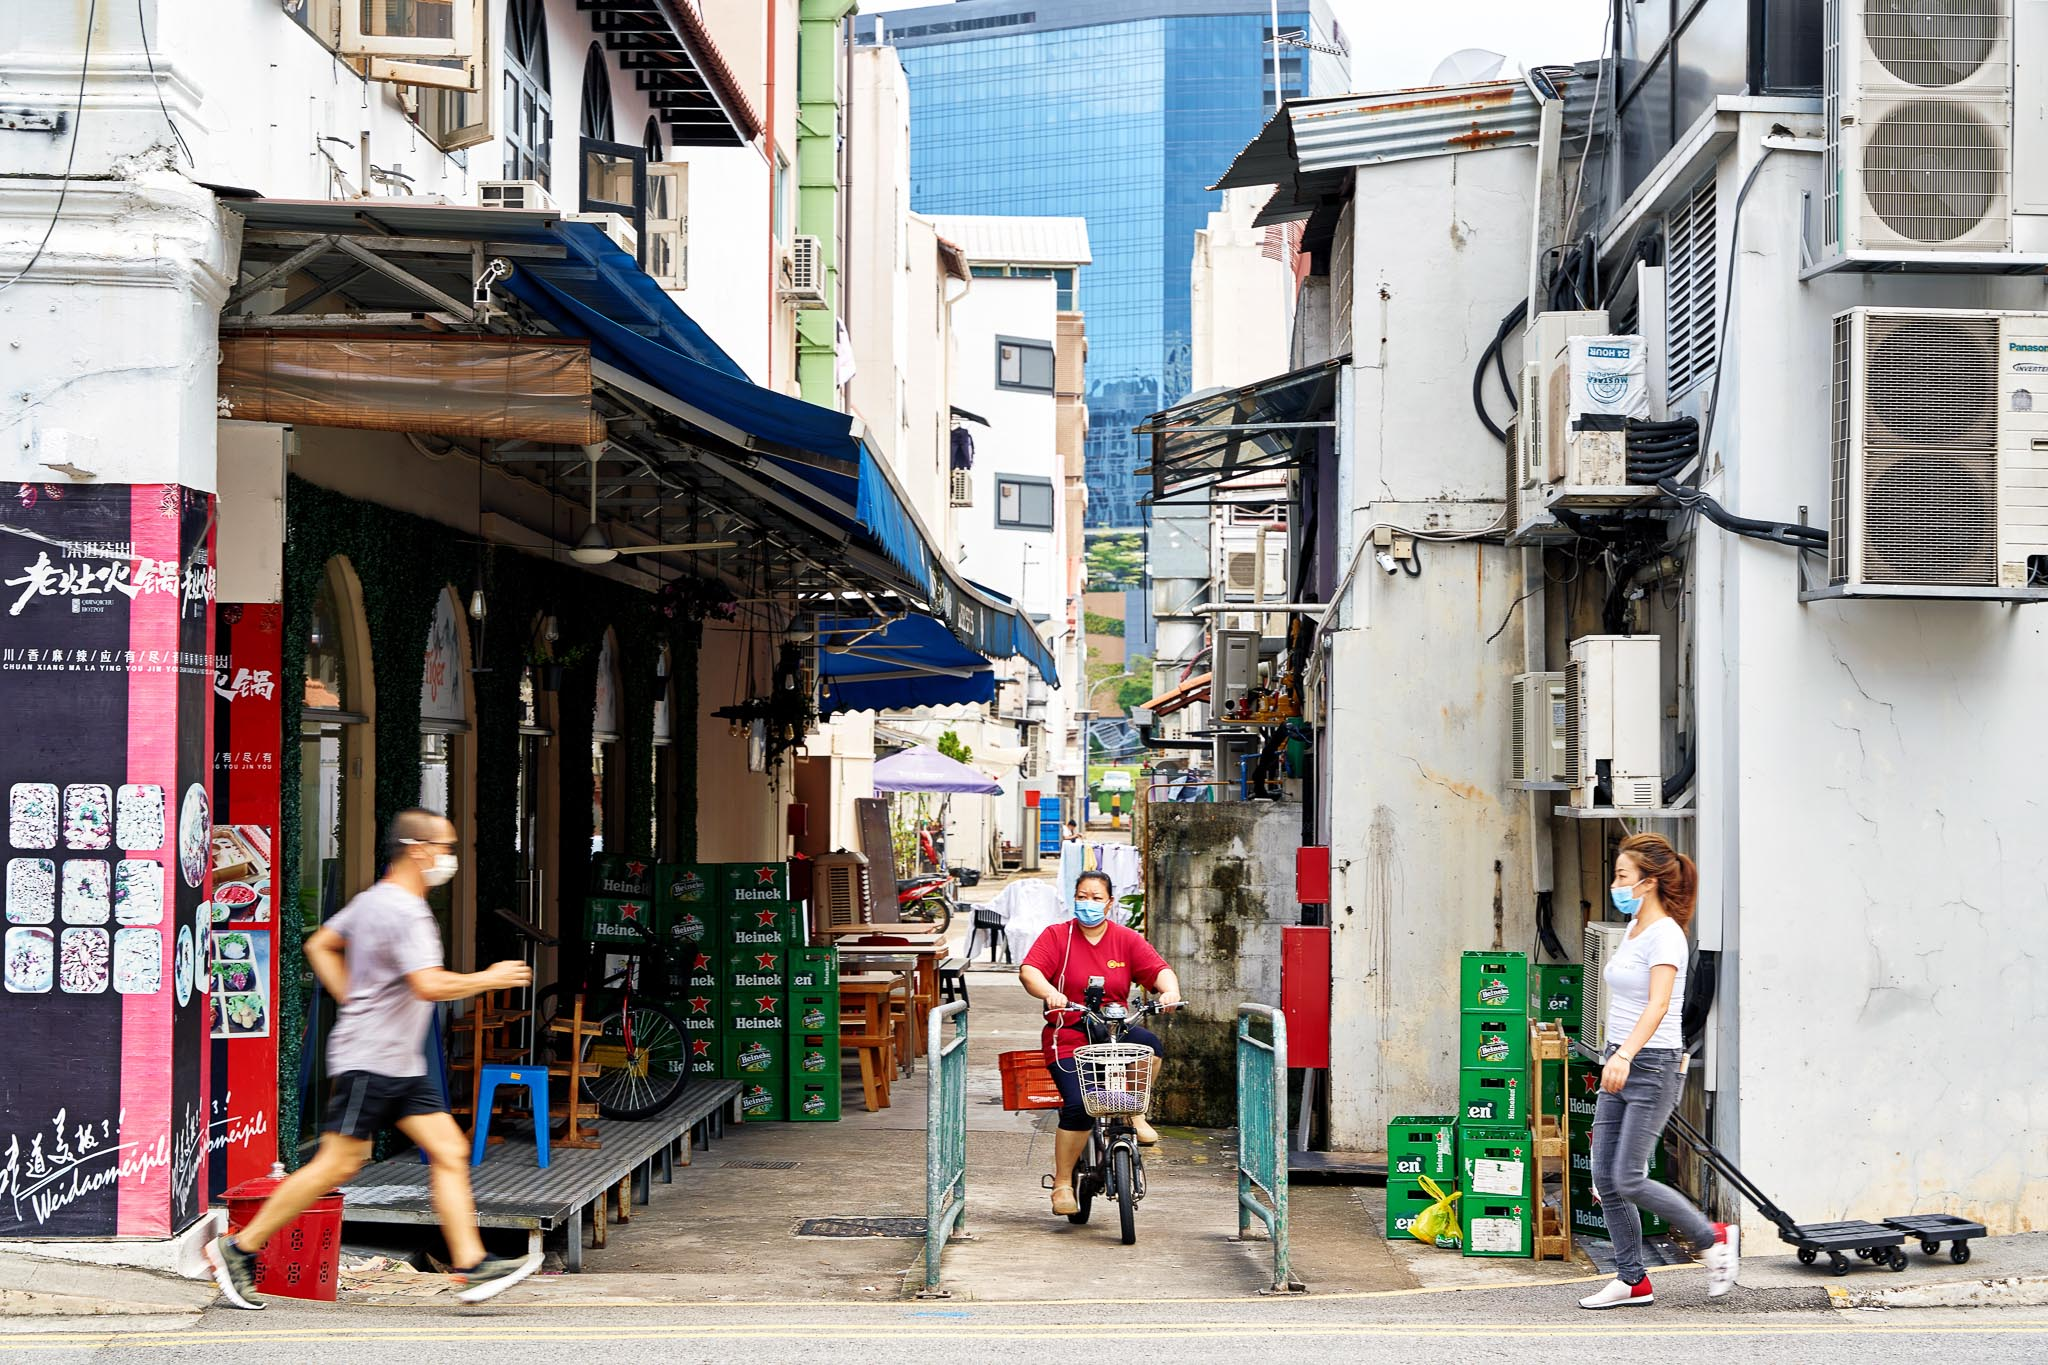 A runner, bicyclist, and a pedestrian converging at an alley, a street scene at Jln Besar, Singapore.